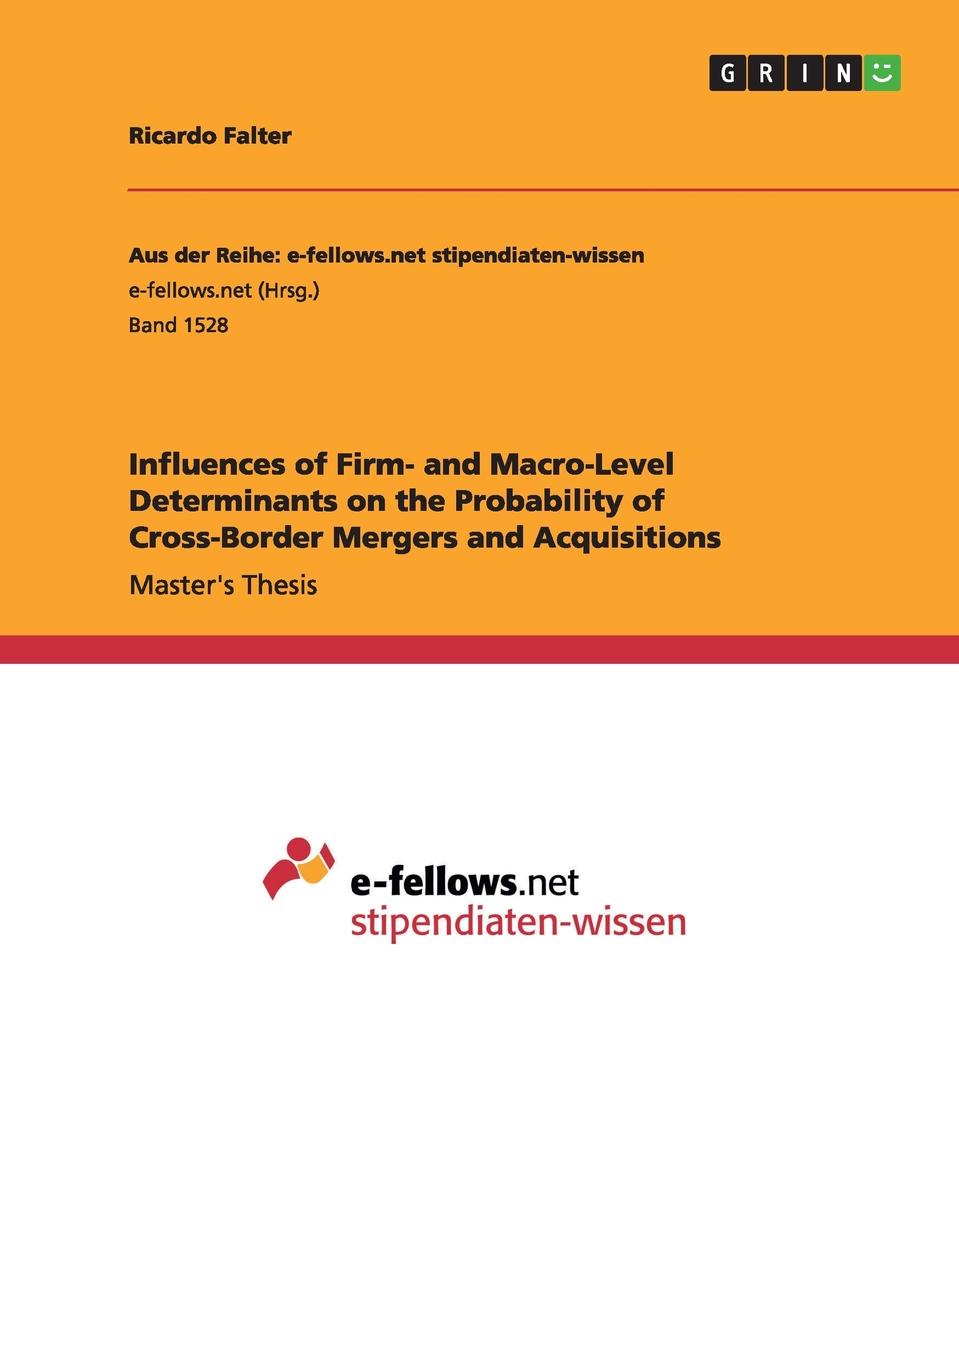 Ricardo Falter Influences of Firm- and Macro-Level Determinants on the Probability of Cross-Border Mergers and Acquisitions macro determinants of growth